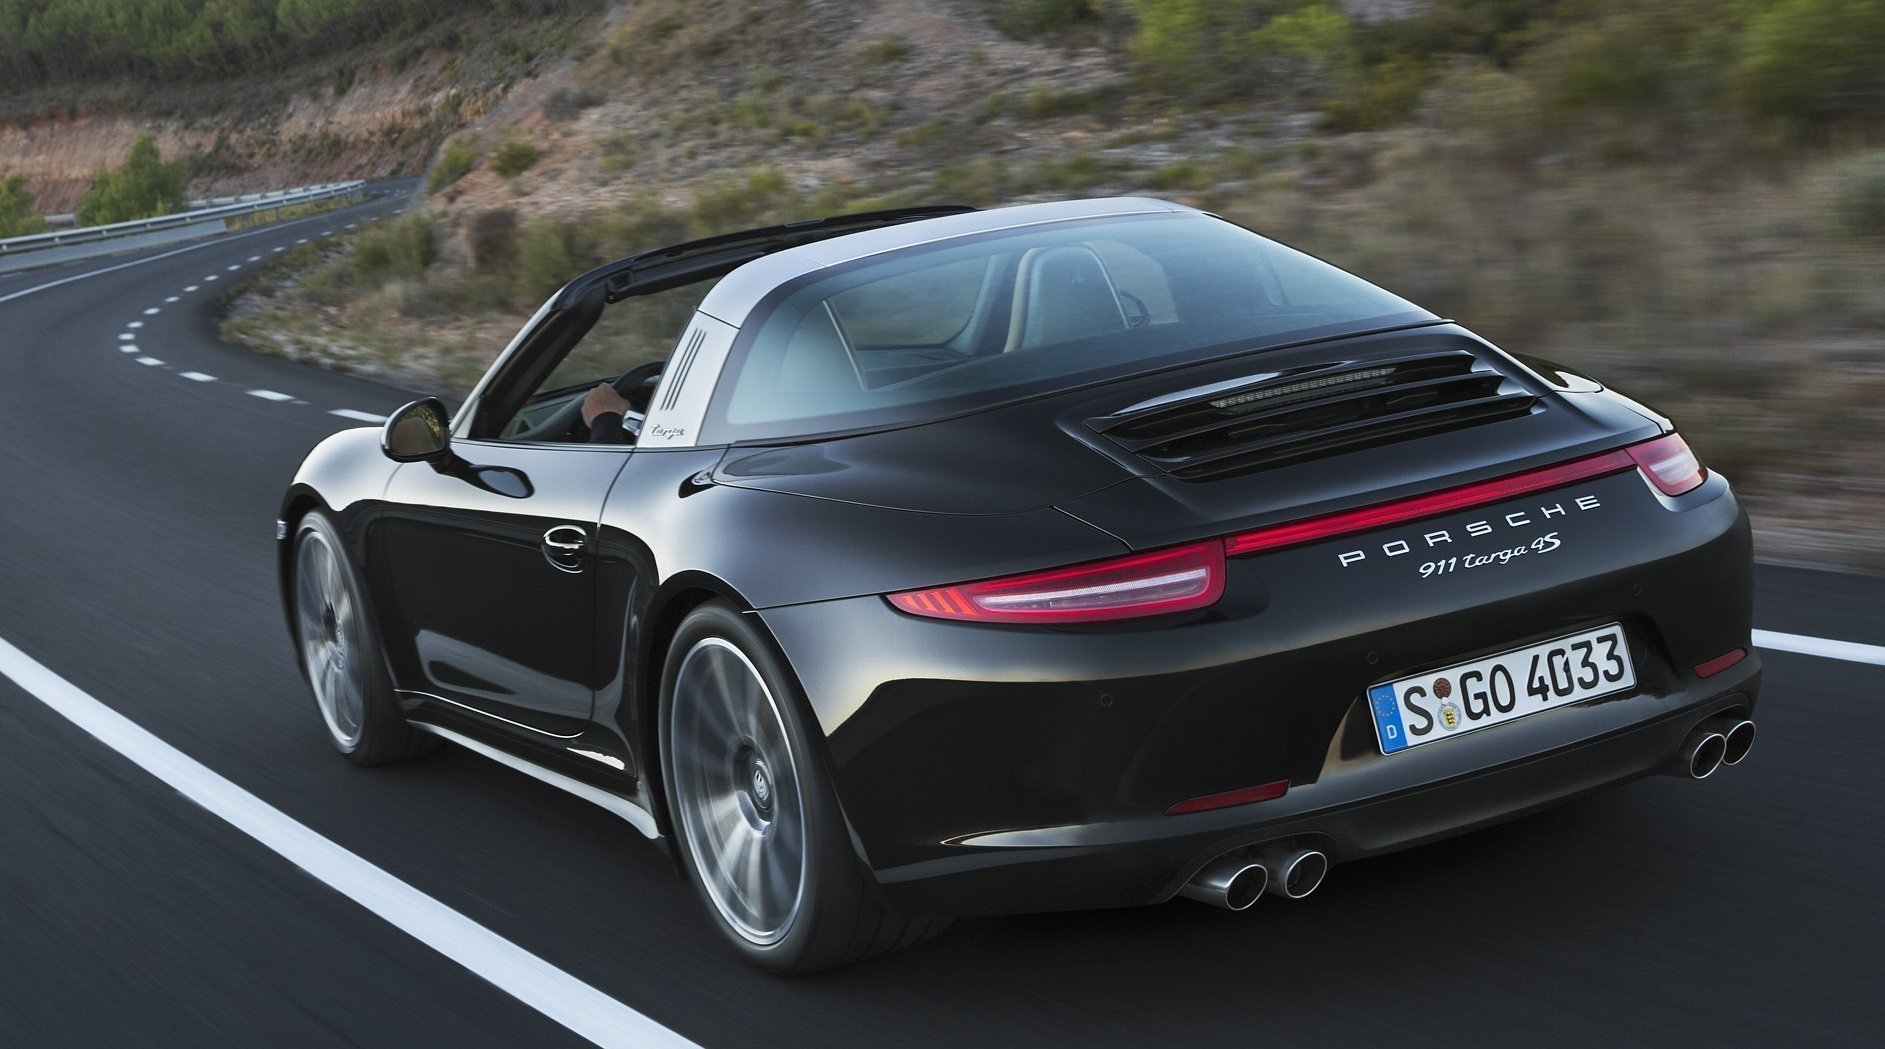 2015 porsche 911 targa returns with wide body and awd - the san